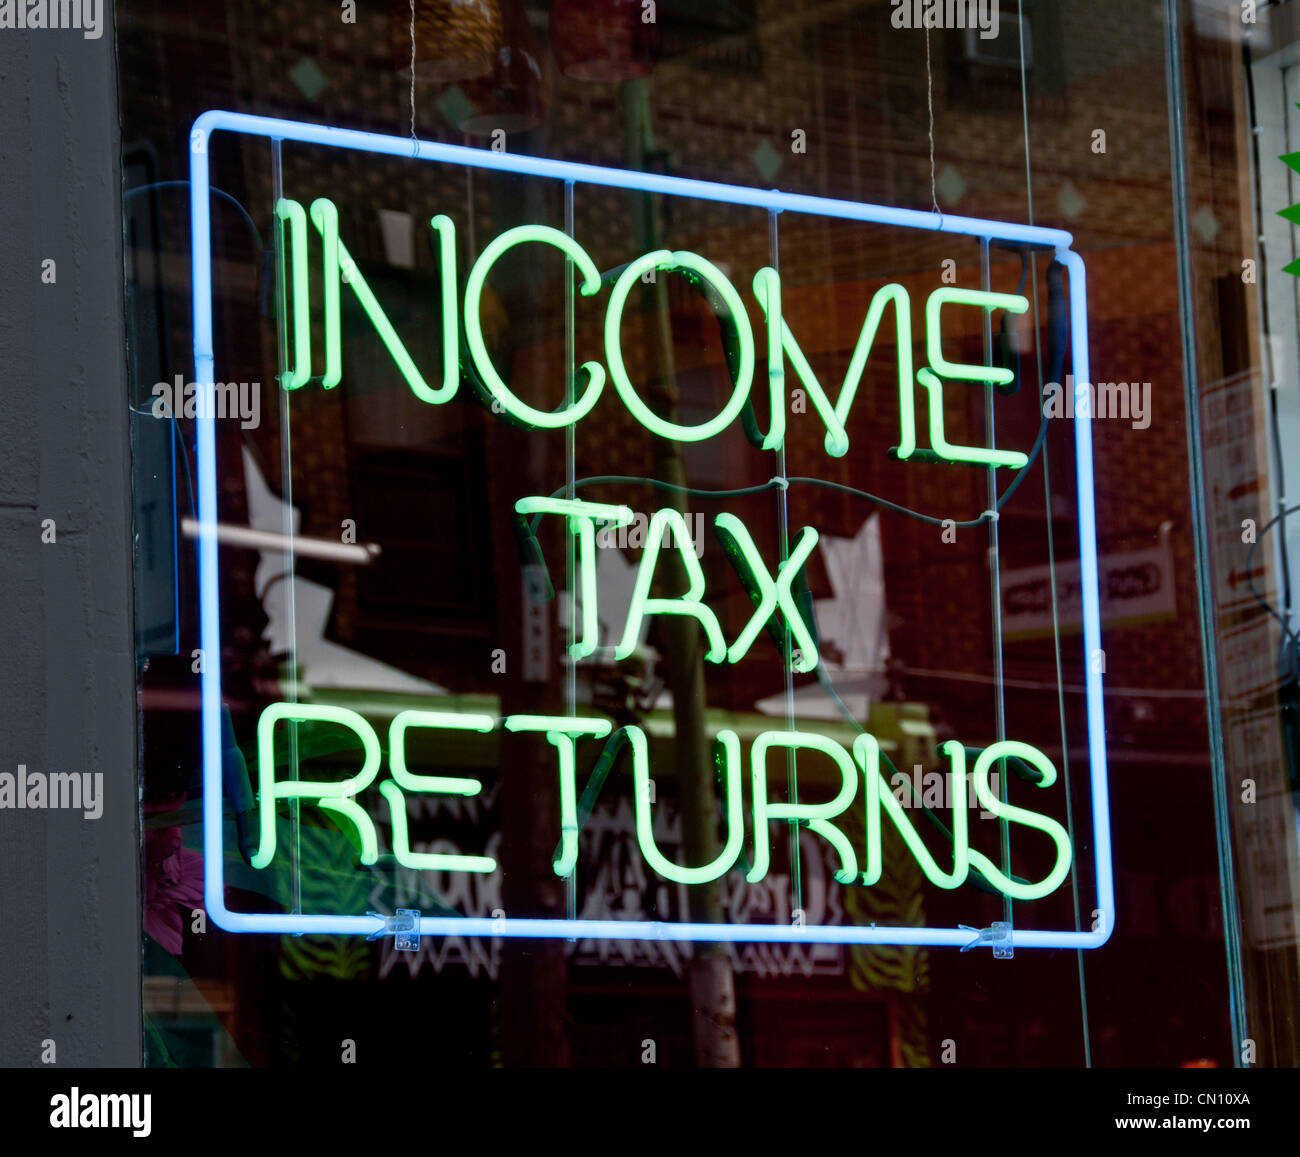 Income Tax Returns neon sign - Stock Image